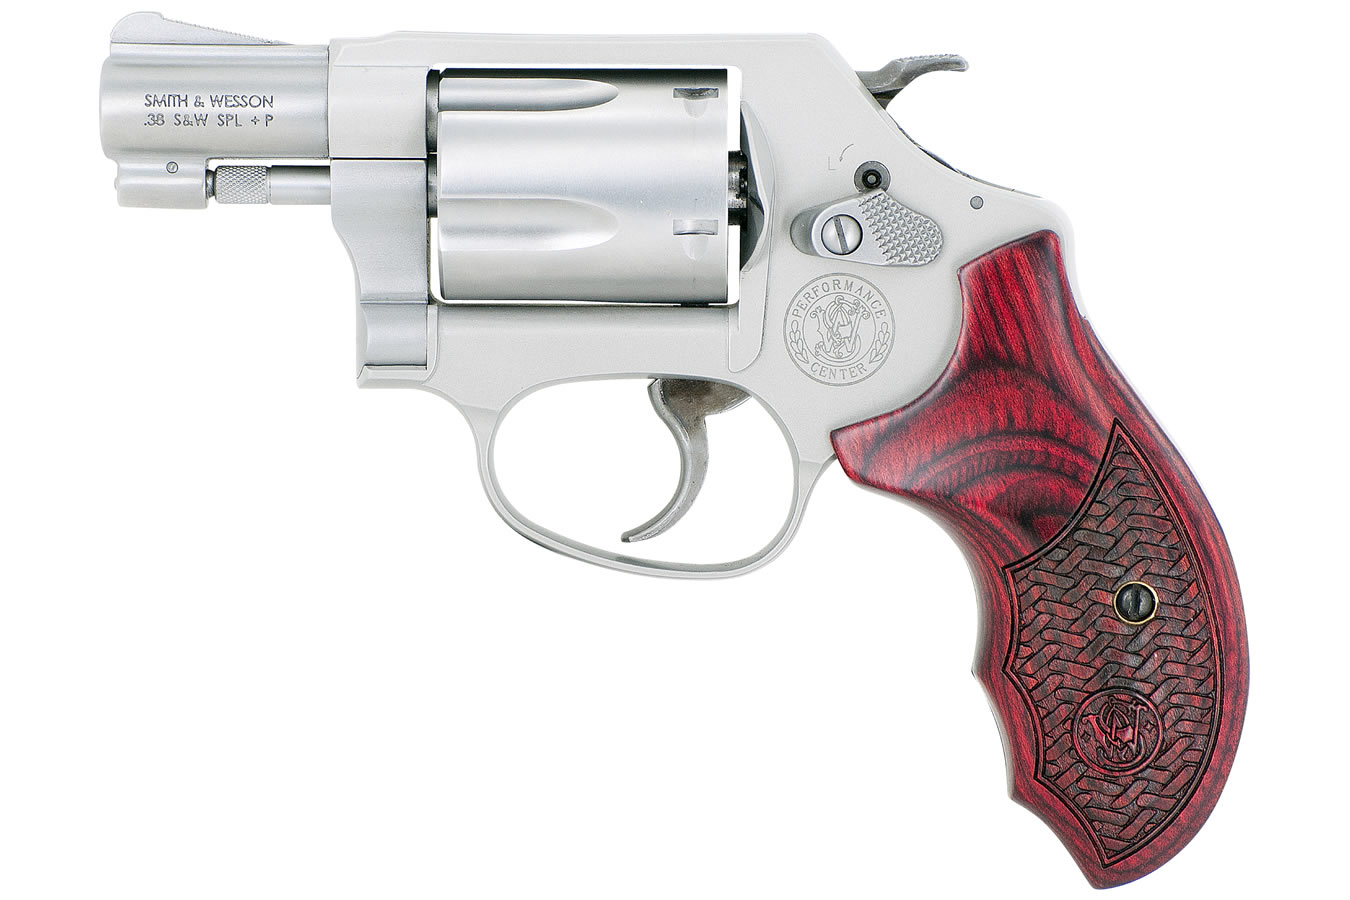 637 Performance Center 38 Special Revolver with Enhanced Action